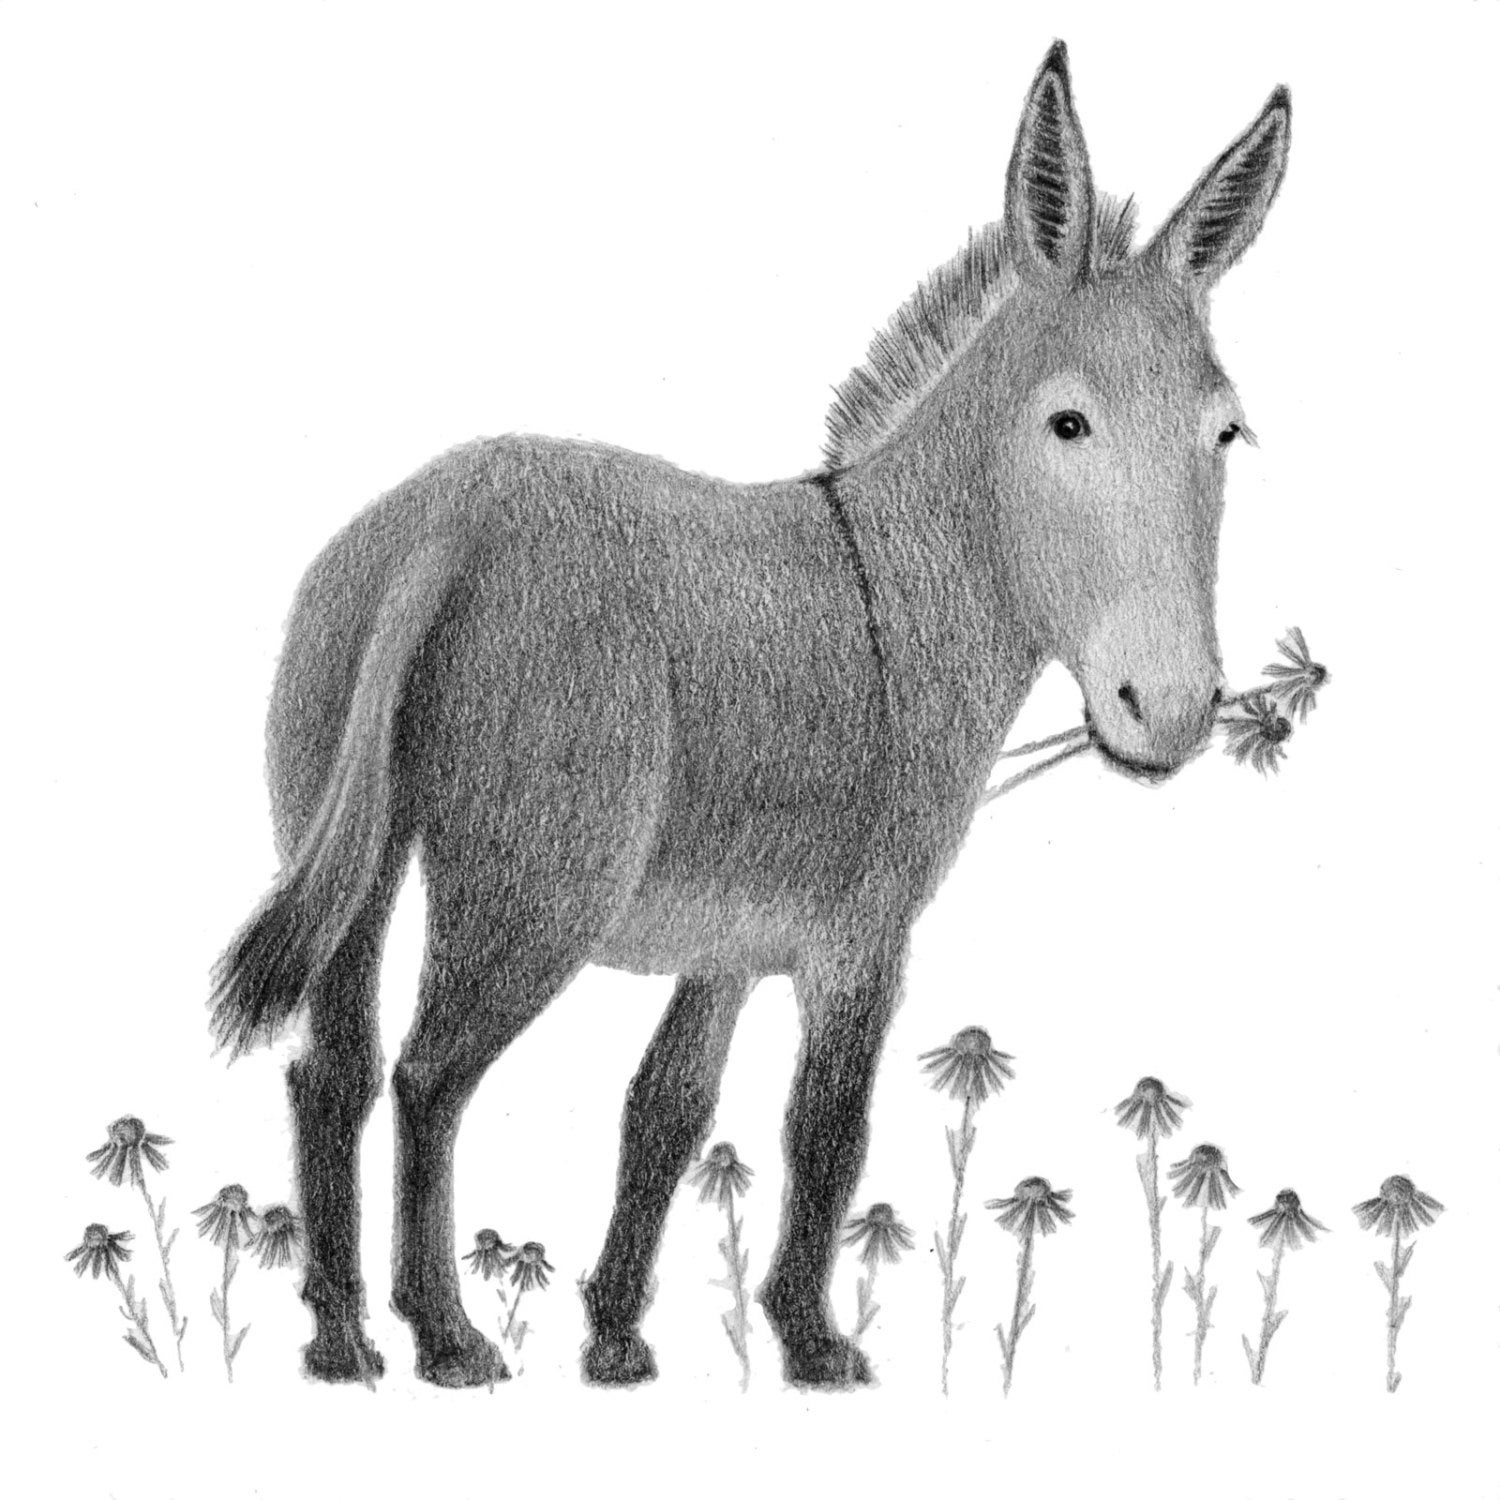 donkey drawing donkey friends drawing by gail finger donkey drawing